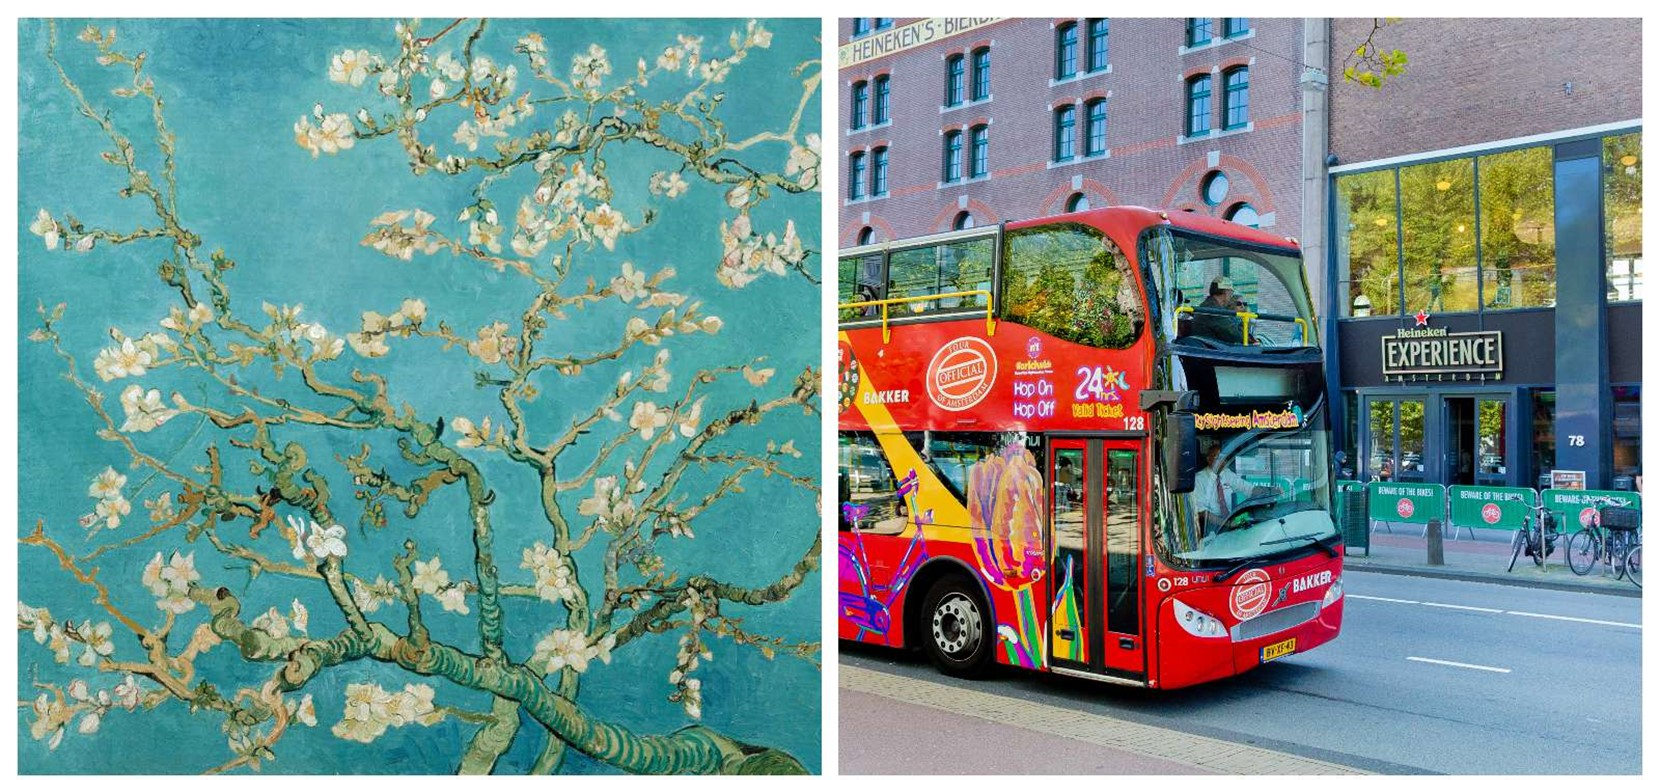 Van Gogh Museum + Hop On Hop Off Bus + Boot Kombination